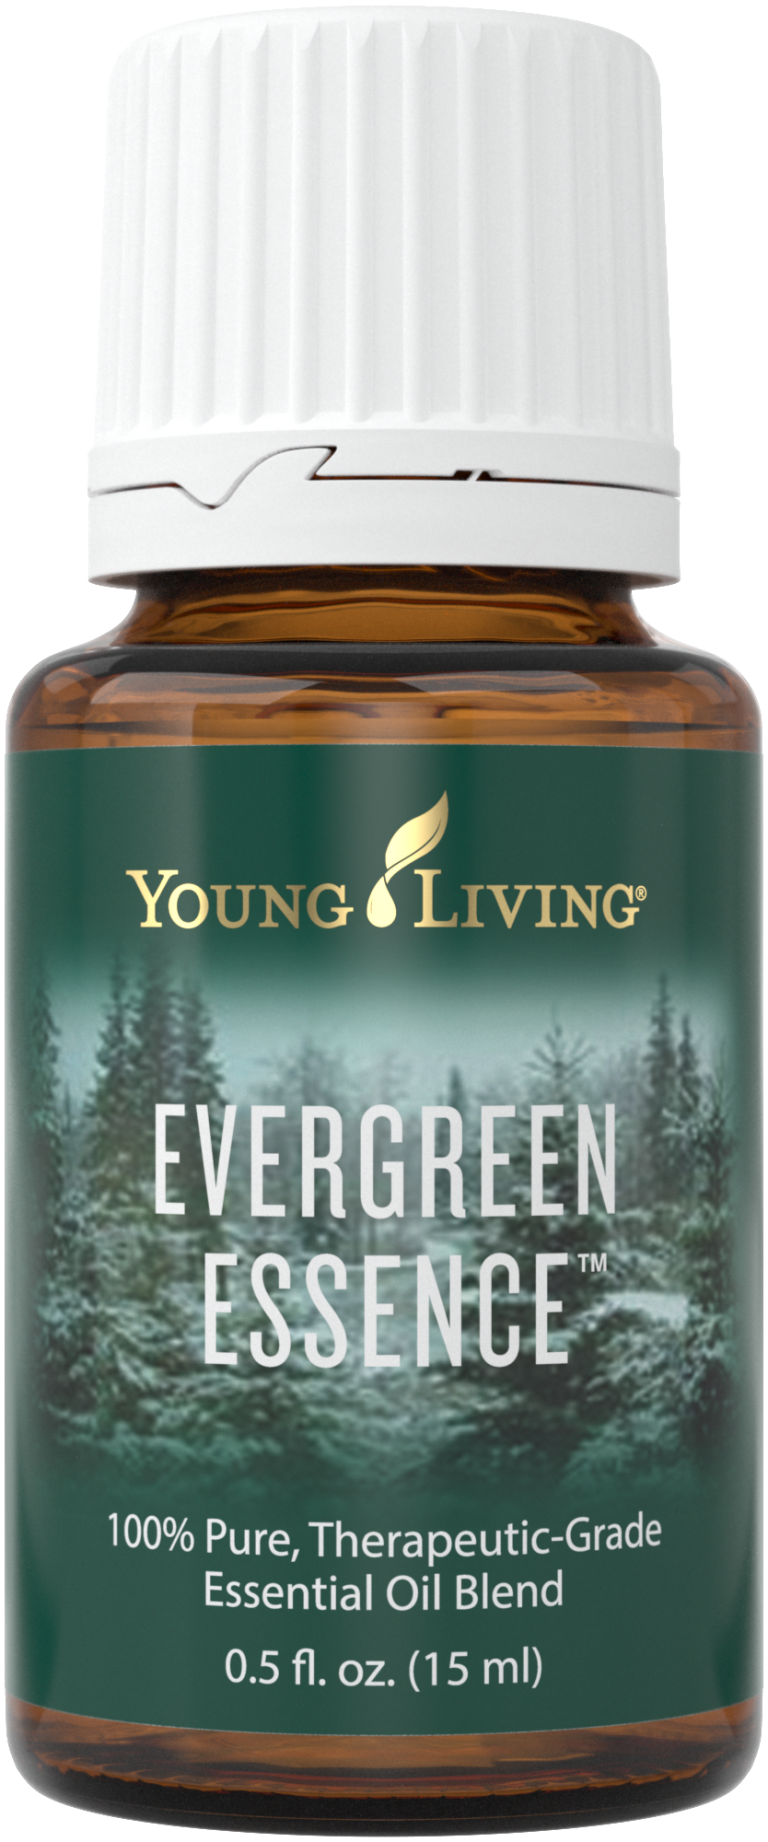 evergreenessence_15ml_silo_us_2016_24231633200_o